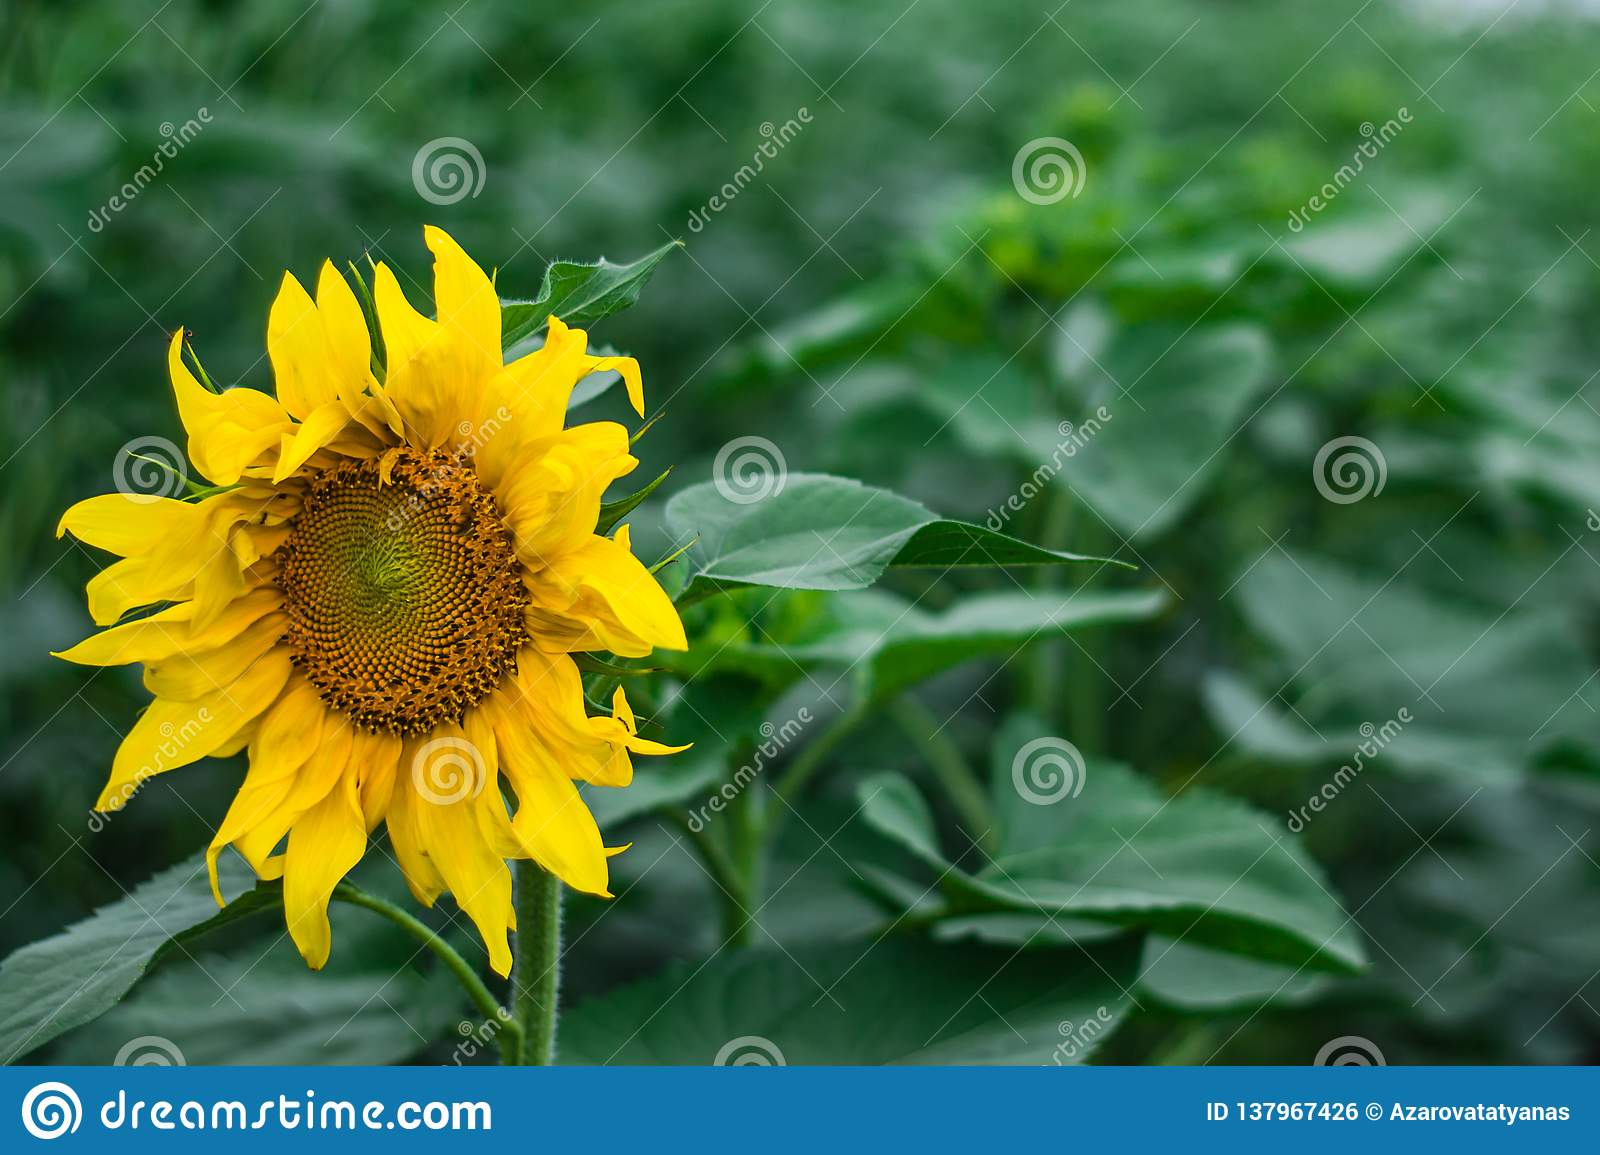 Sunflower field natural green on green background. Spring nature scene, green grass field. Rural grass field landscape.